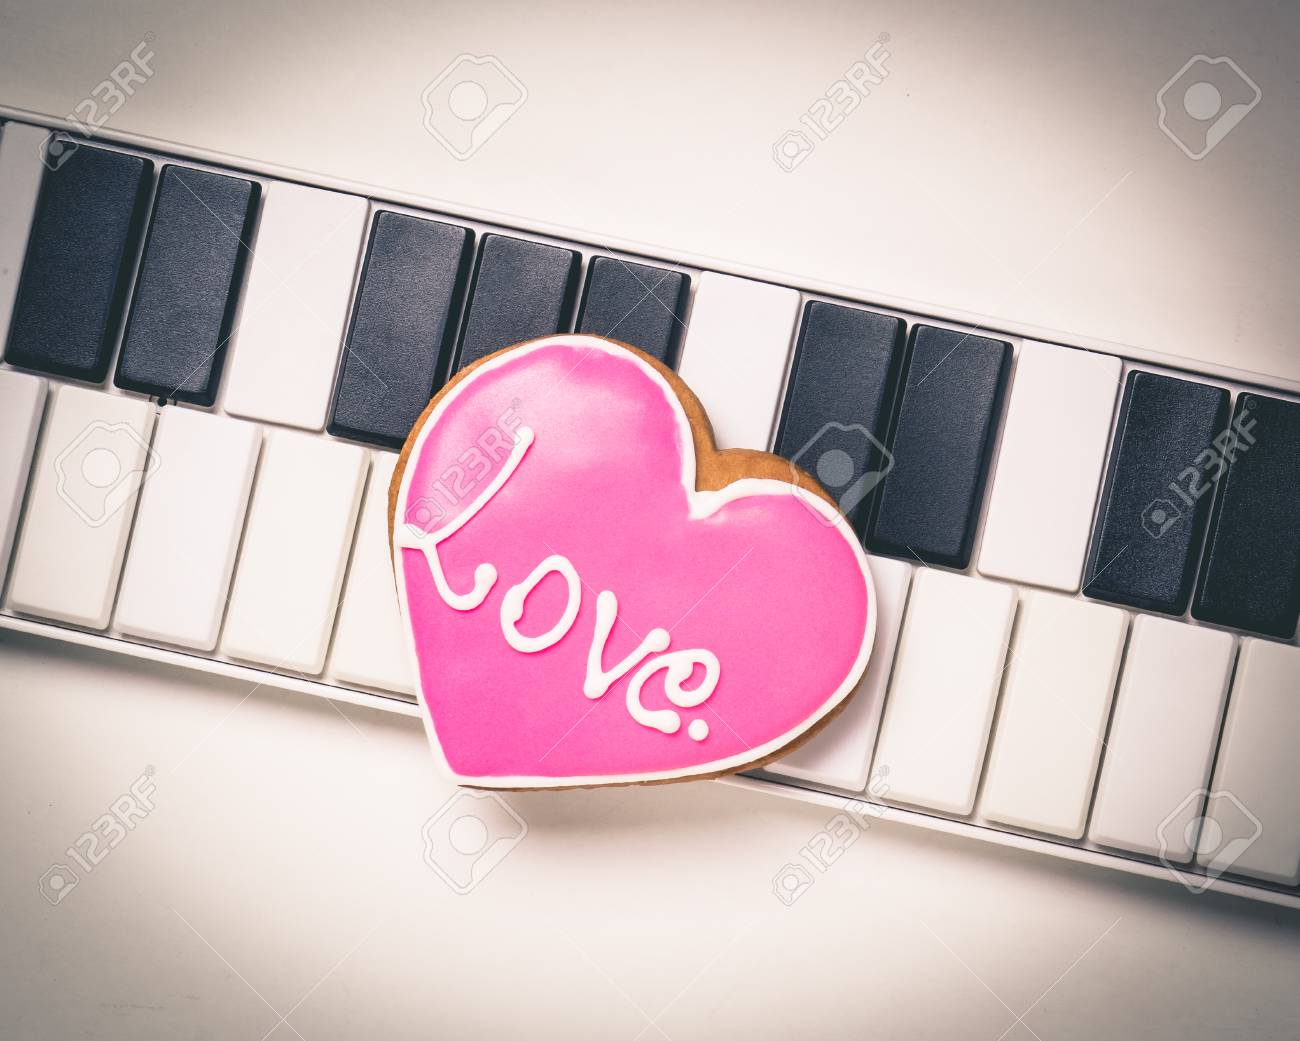 Love Heart On Music Keyboard For Valentines And Music Love Pink